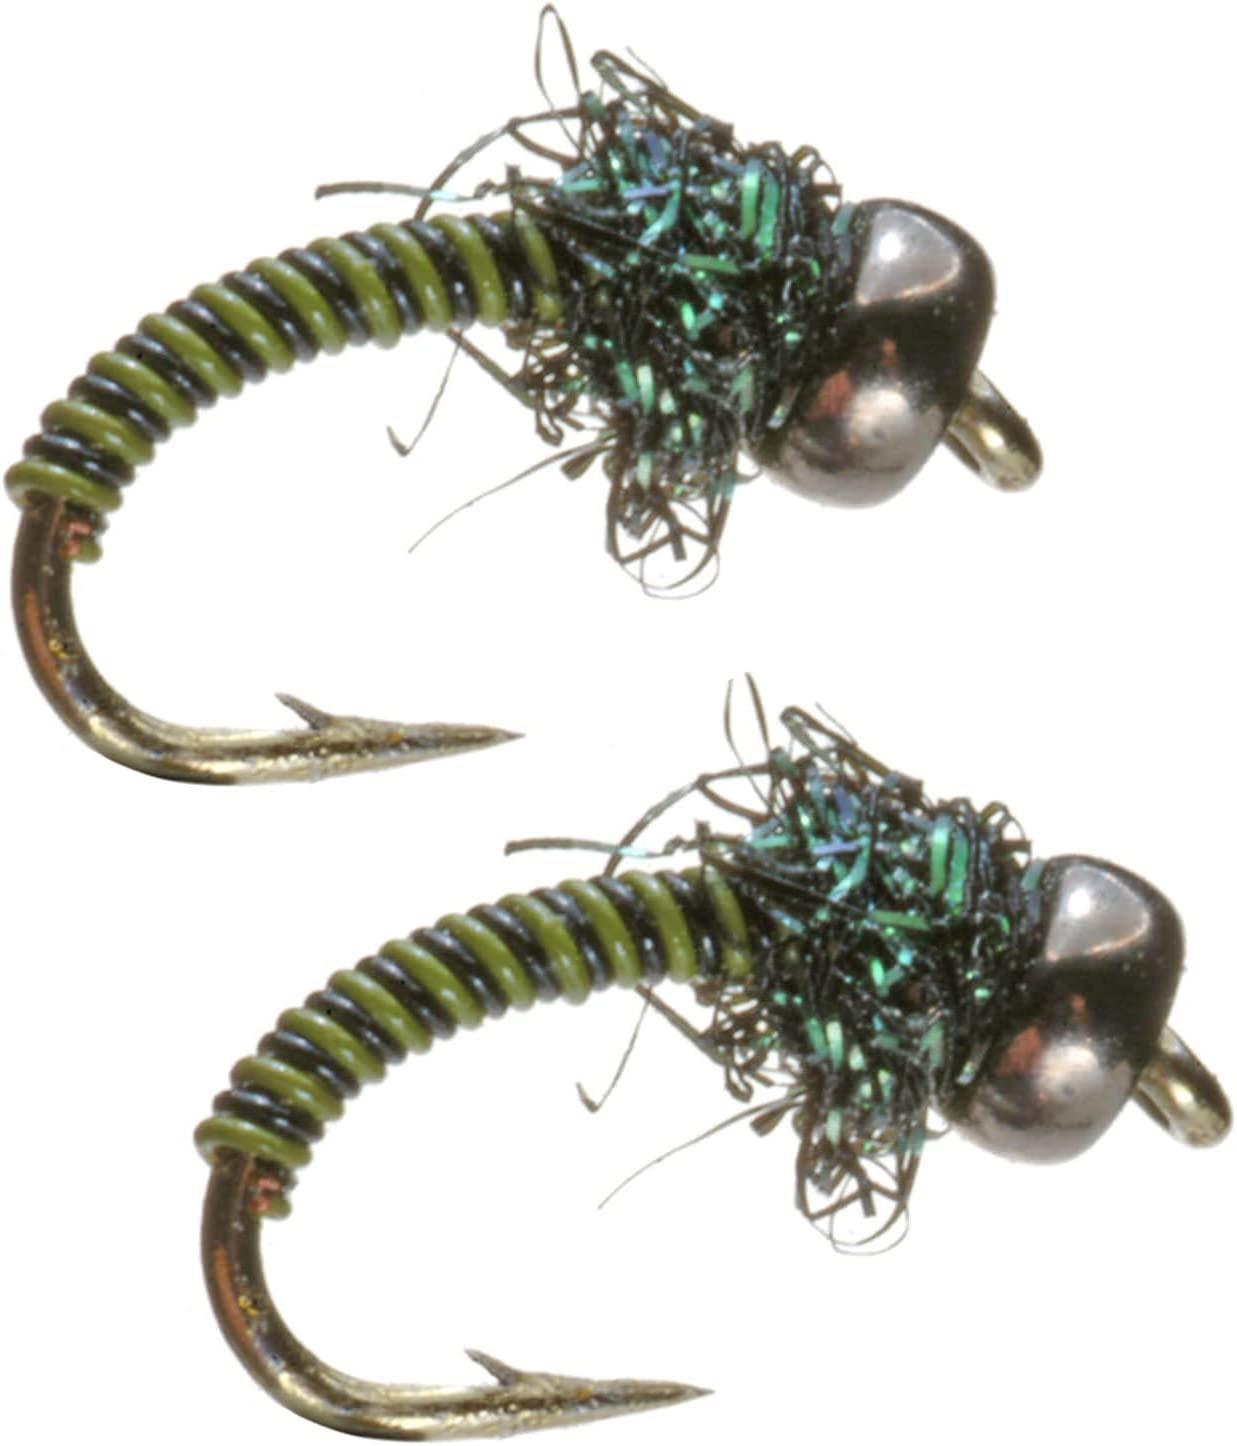 1 DOZEN  TUNGSTEN HEAD TRANSPARENT NYMPHS FOR FLY FISHING-TUNG 193